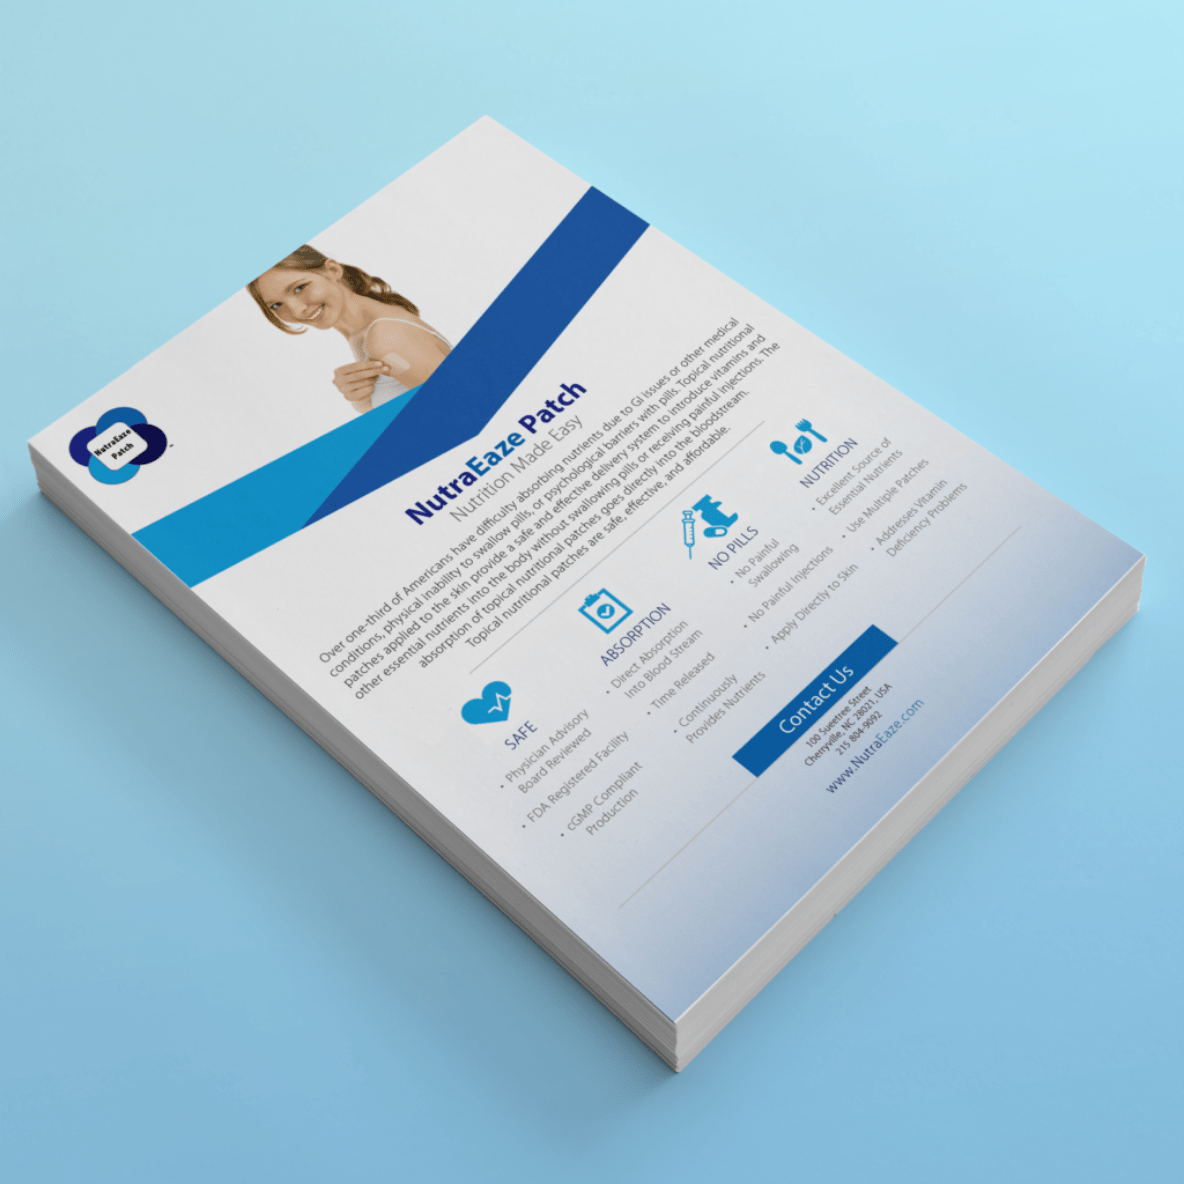 BoBella Branding Agency Flyer and sell sheet samples for NutraEaze Patch